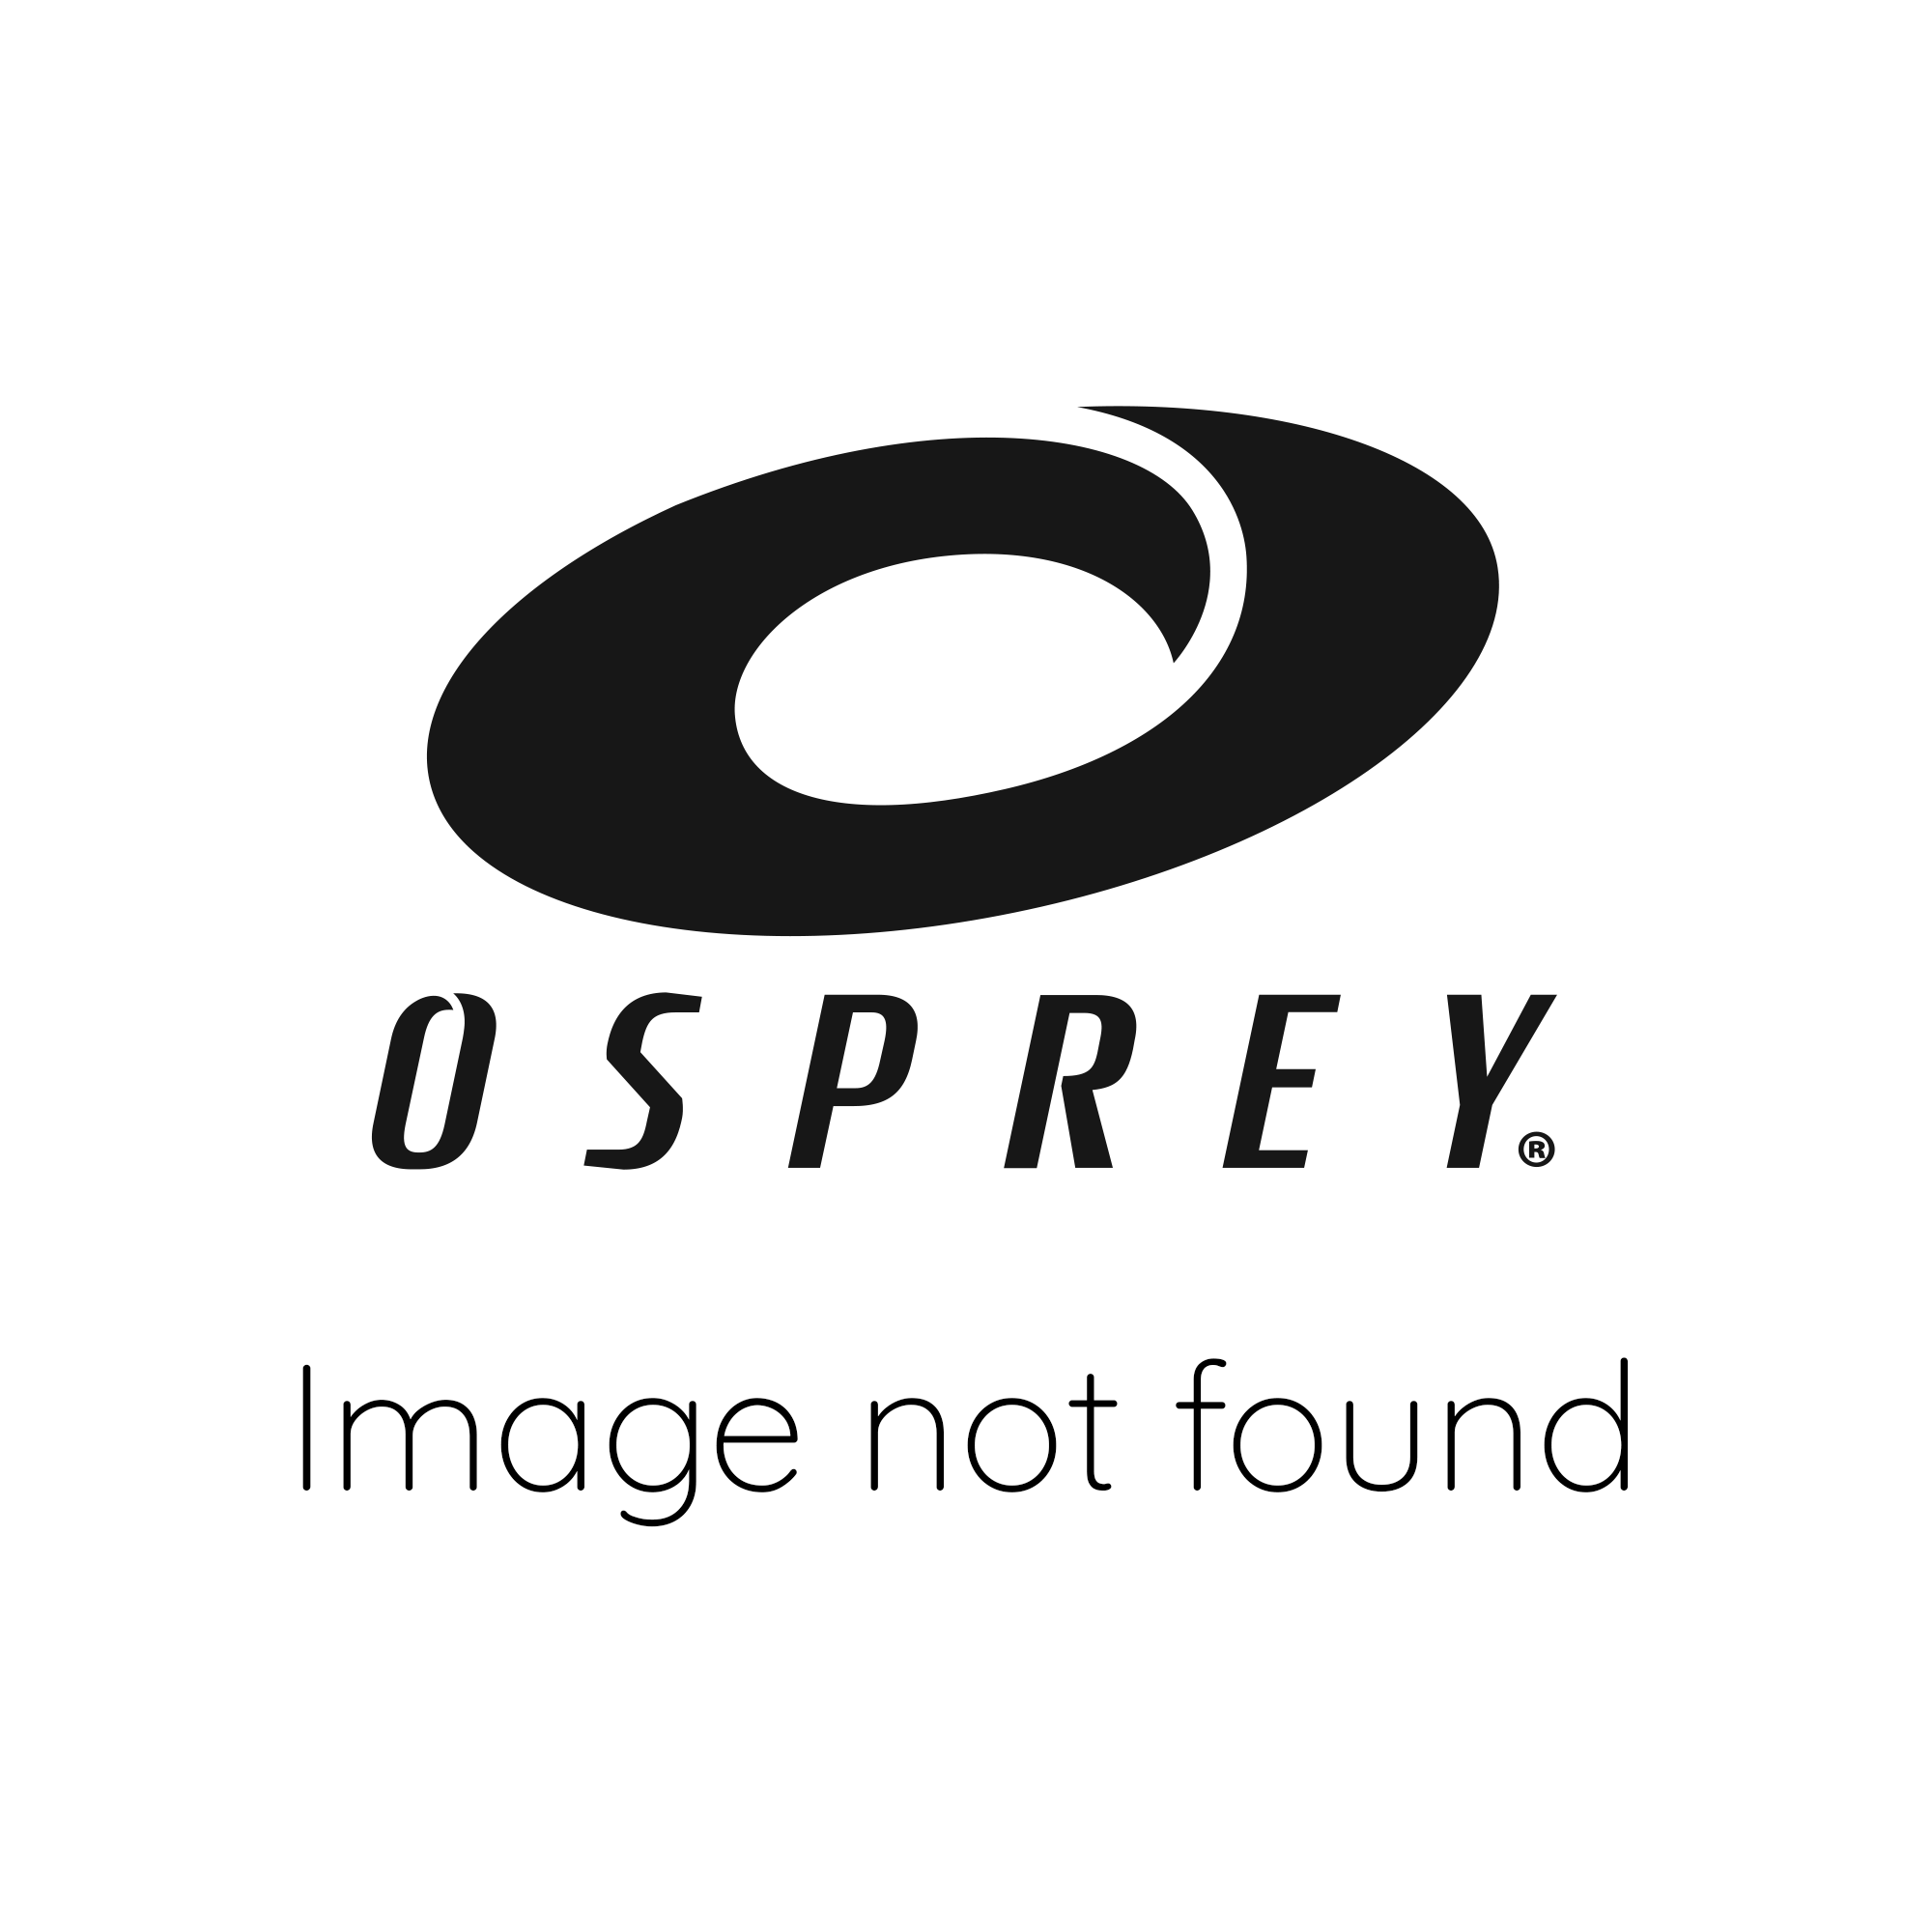 Osprey 5ft 8in Foamie Surfboard